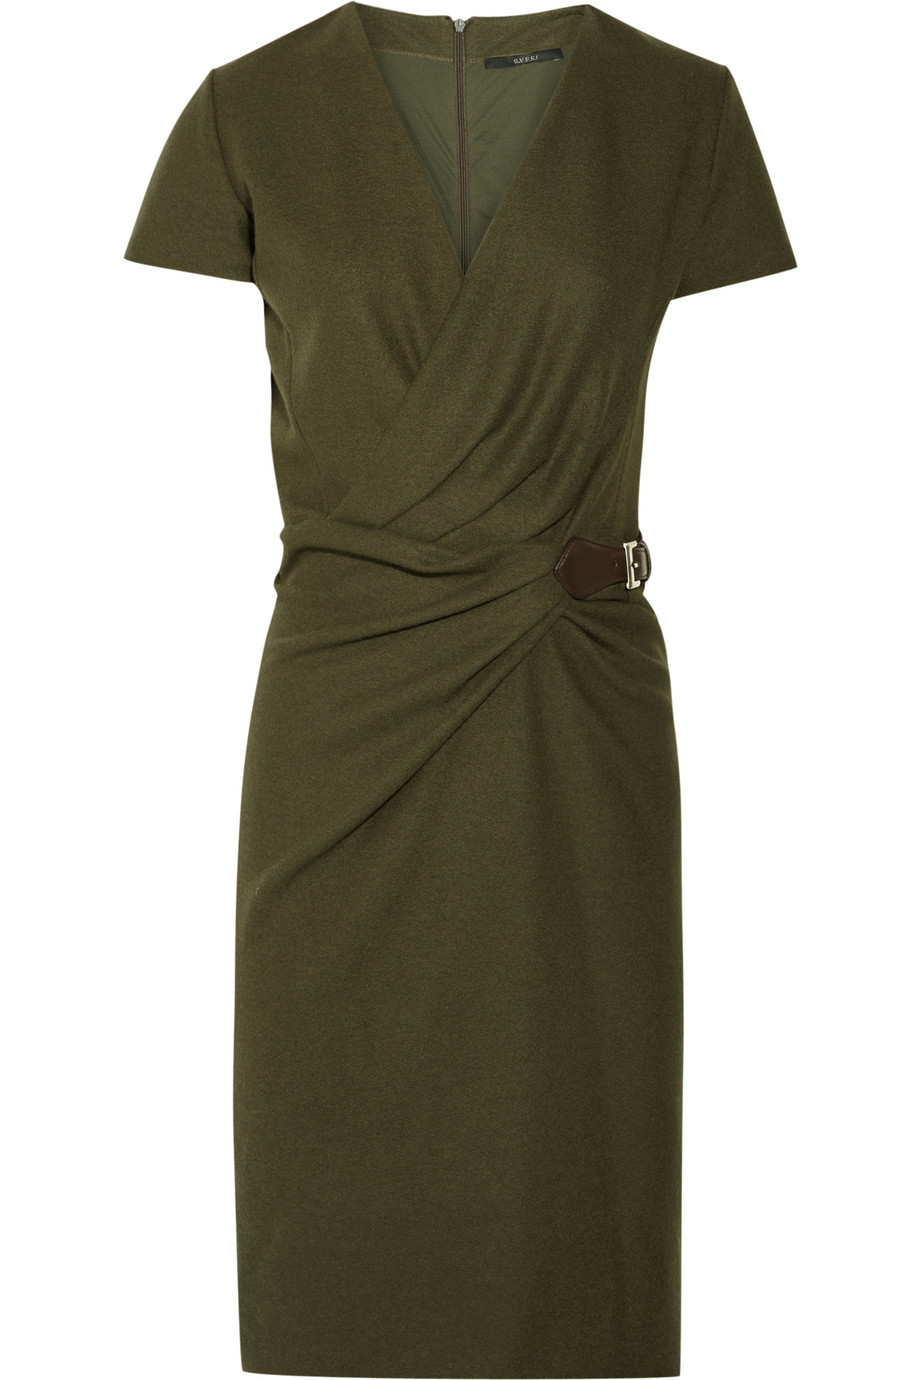 Gucci Belted Wool-Crepe Wrap-Effect Dress, Size: XXL